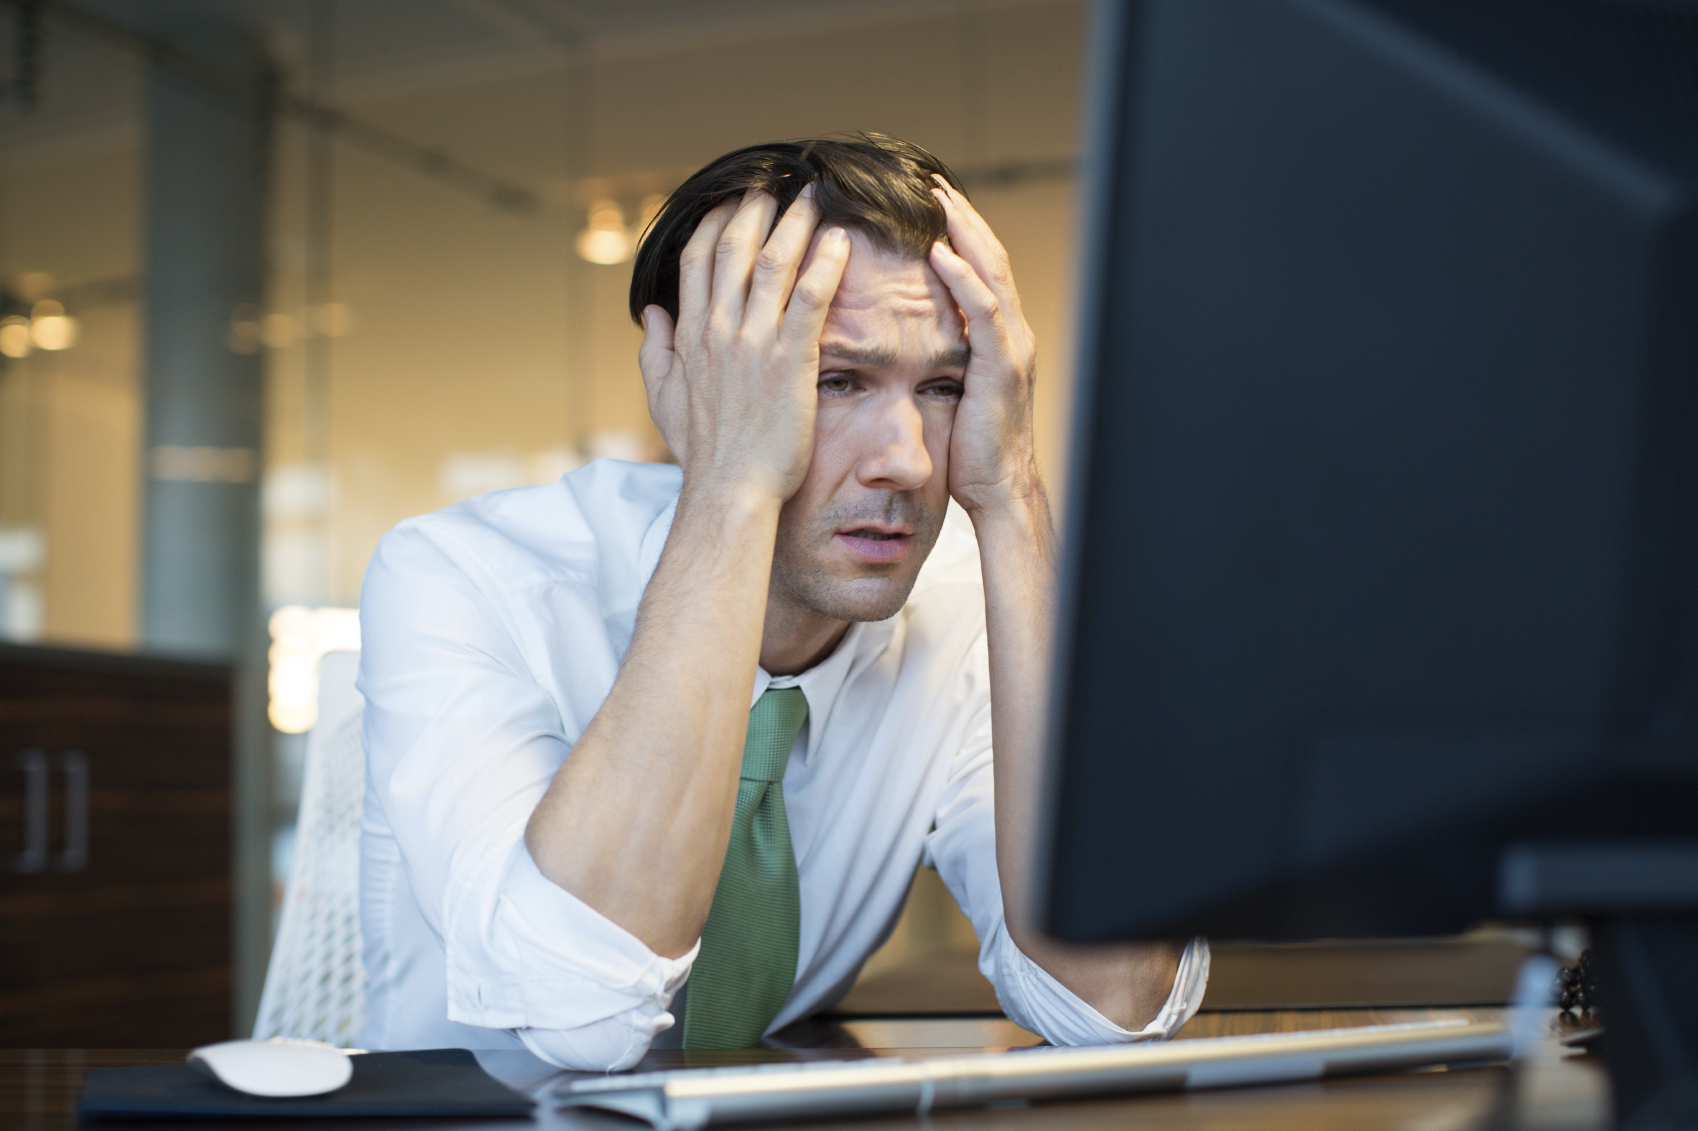 Man with headache for blog - fluorescent lighting decreases work office productivity